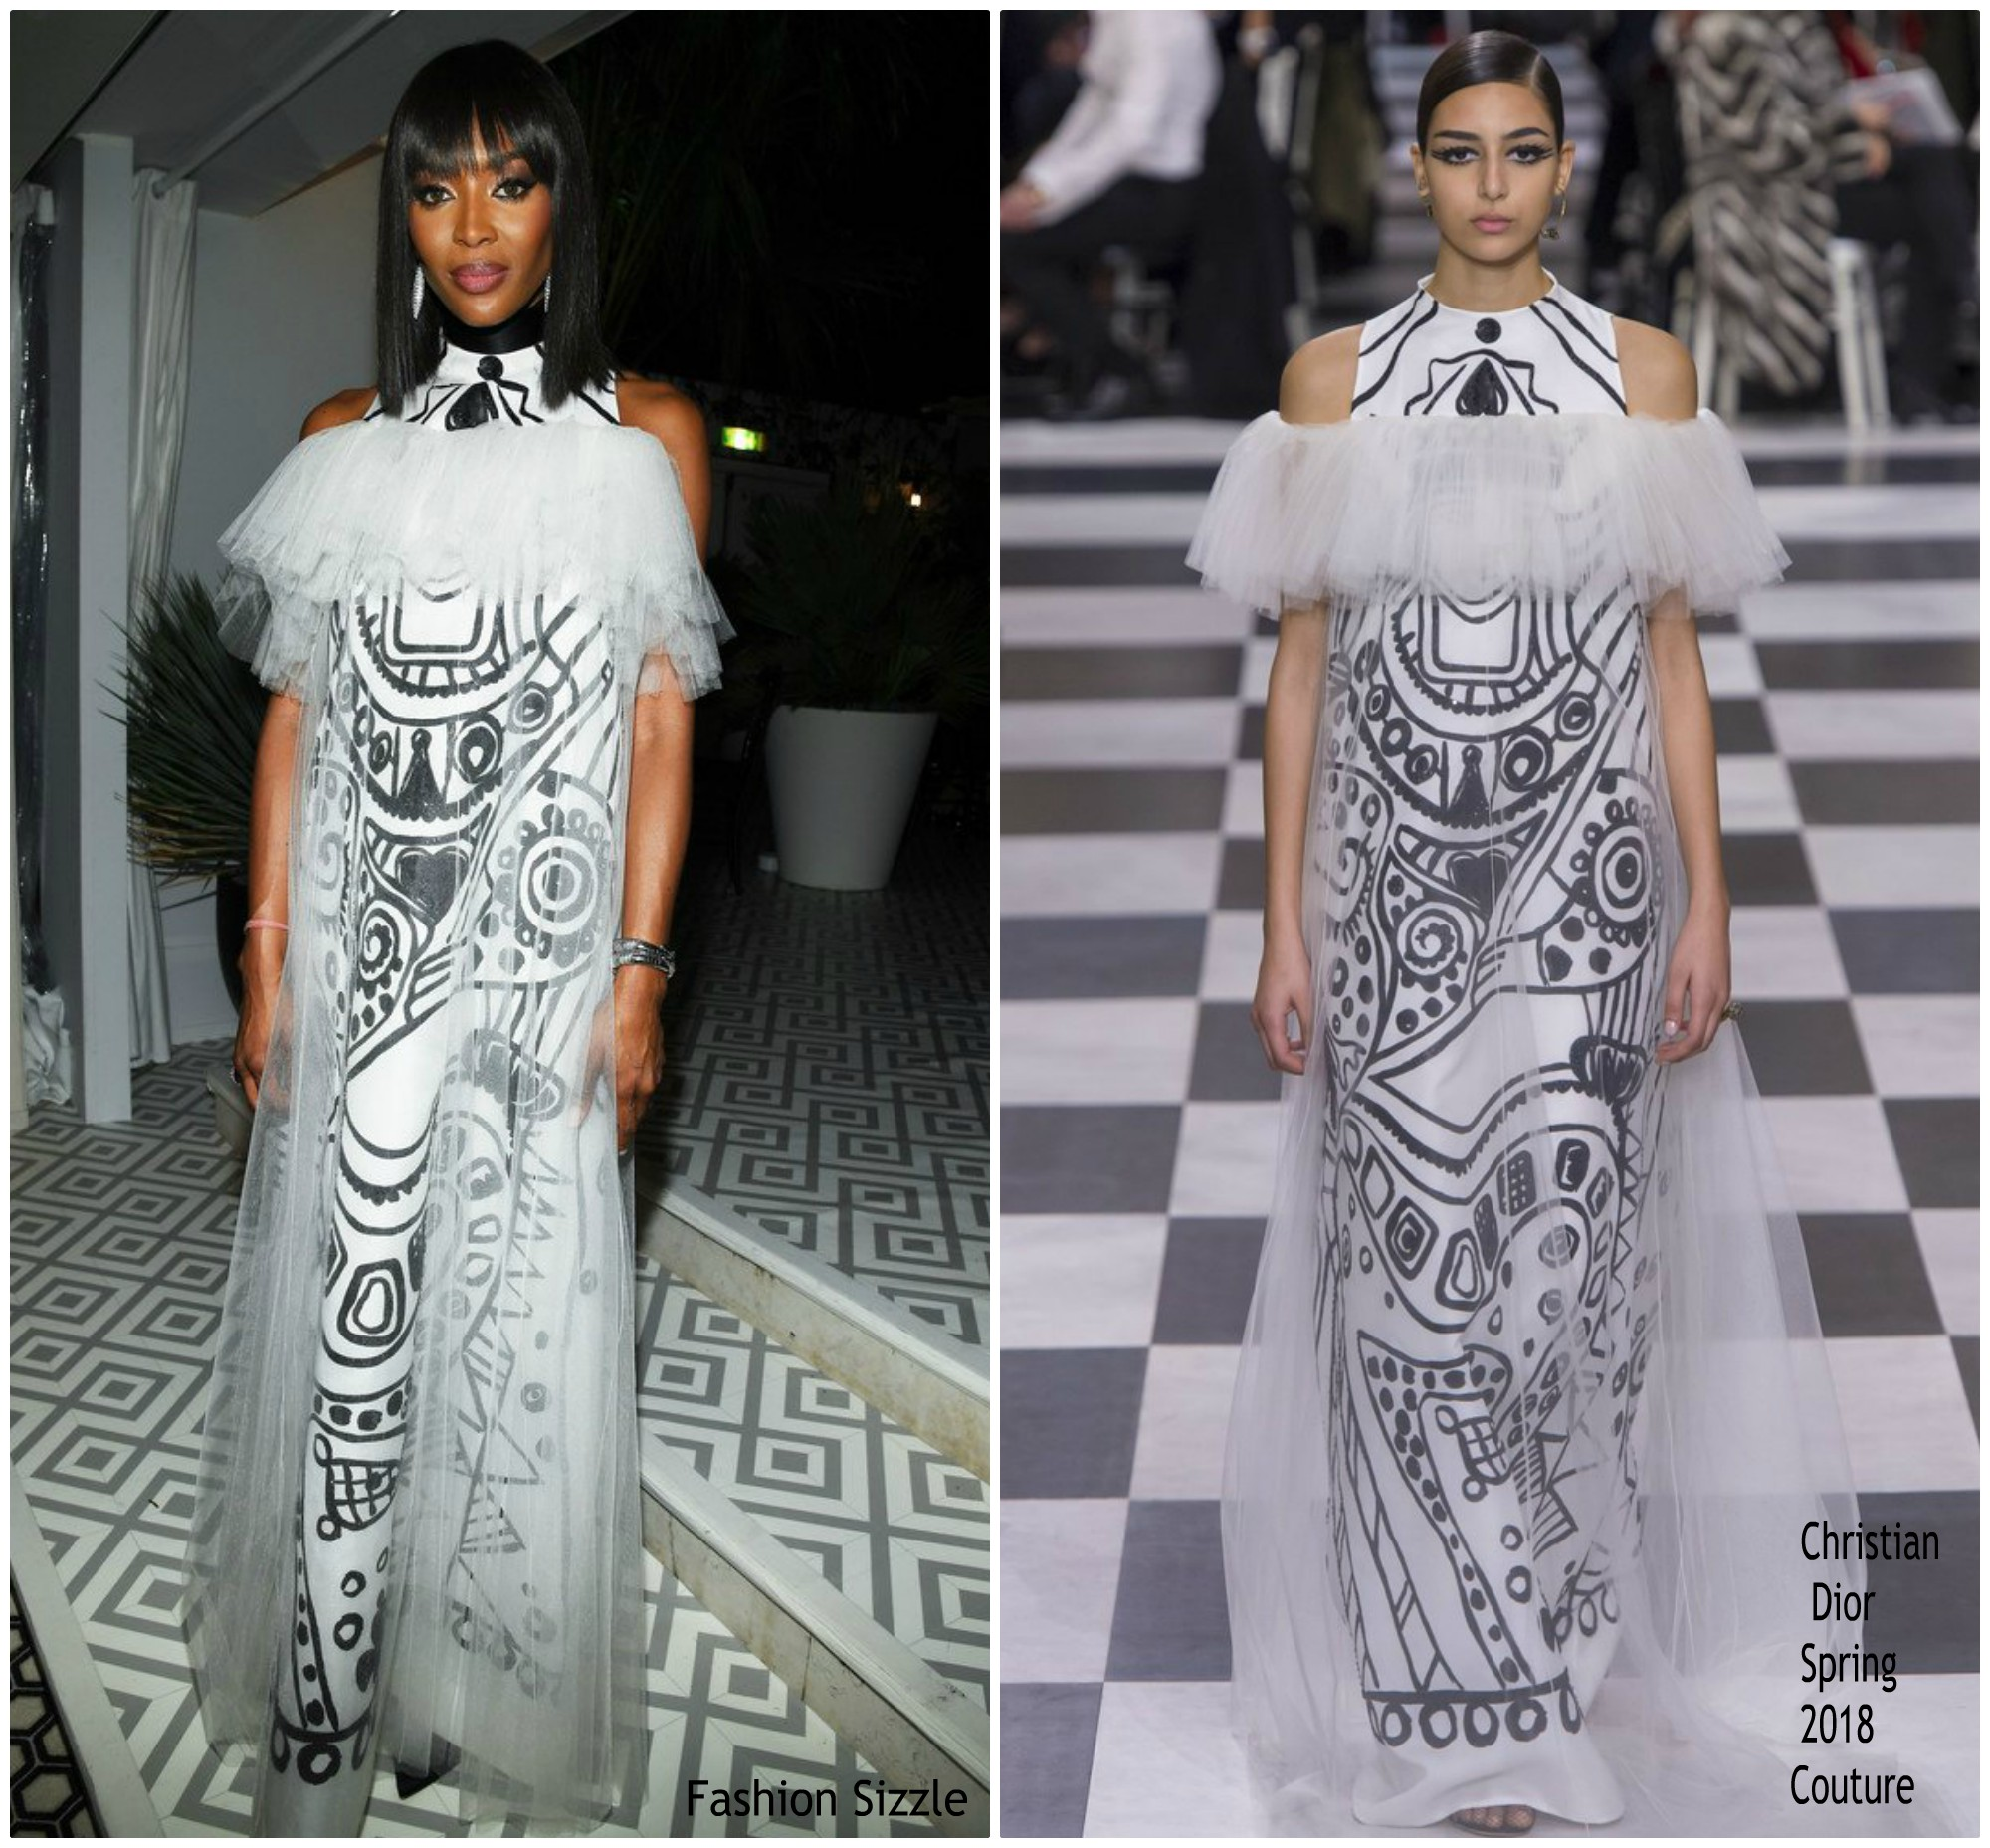 naomi-campbell-in-christian-dior-couture-madame-figaro-x-dior-cannes-film-festival-dinner